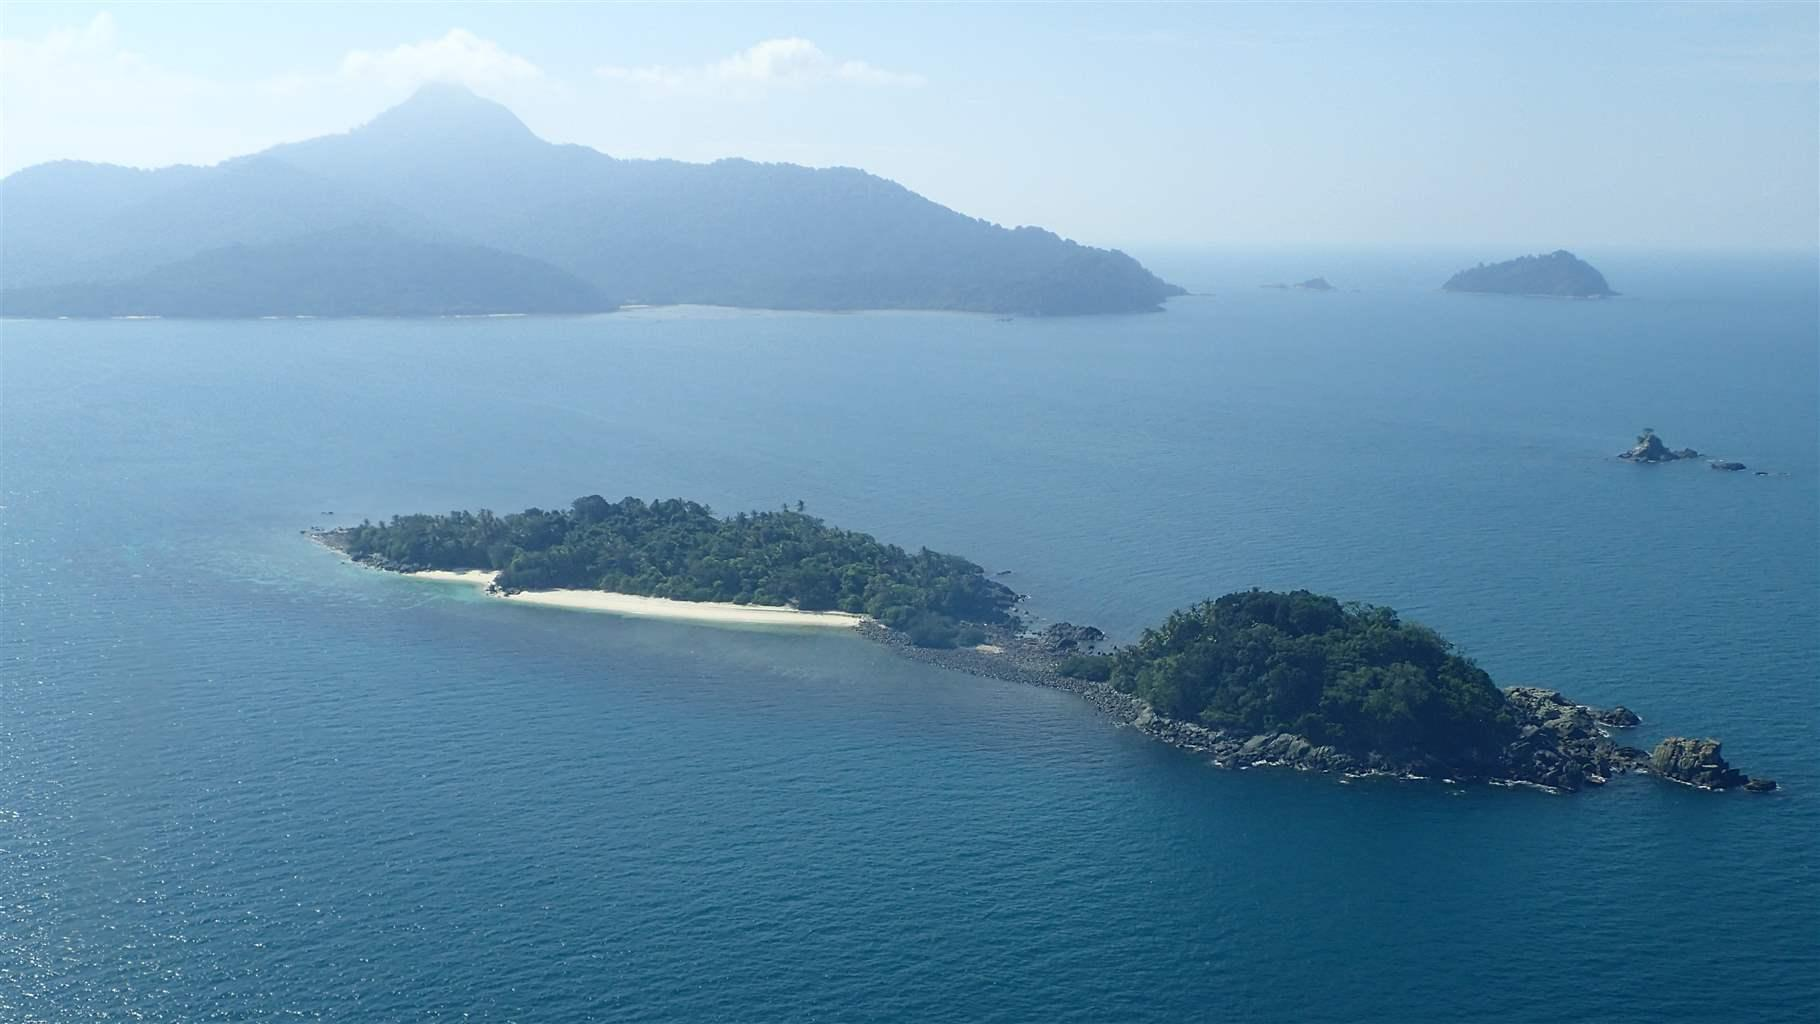 Sibu-Tinggi Islands